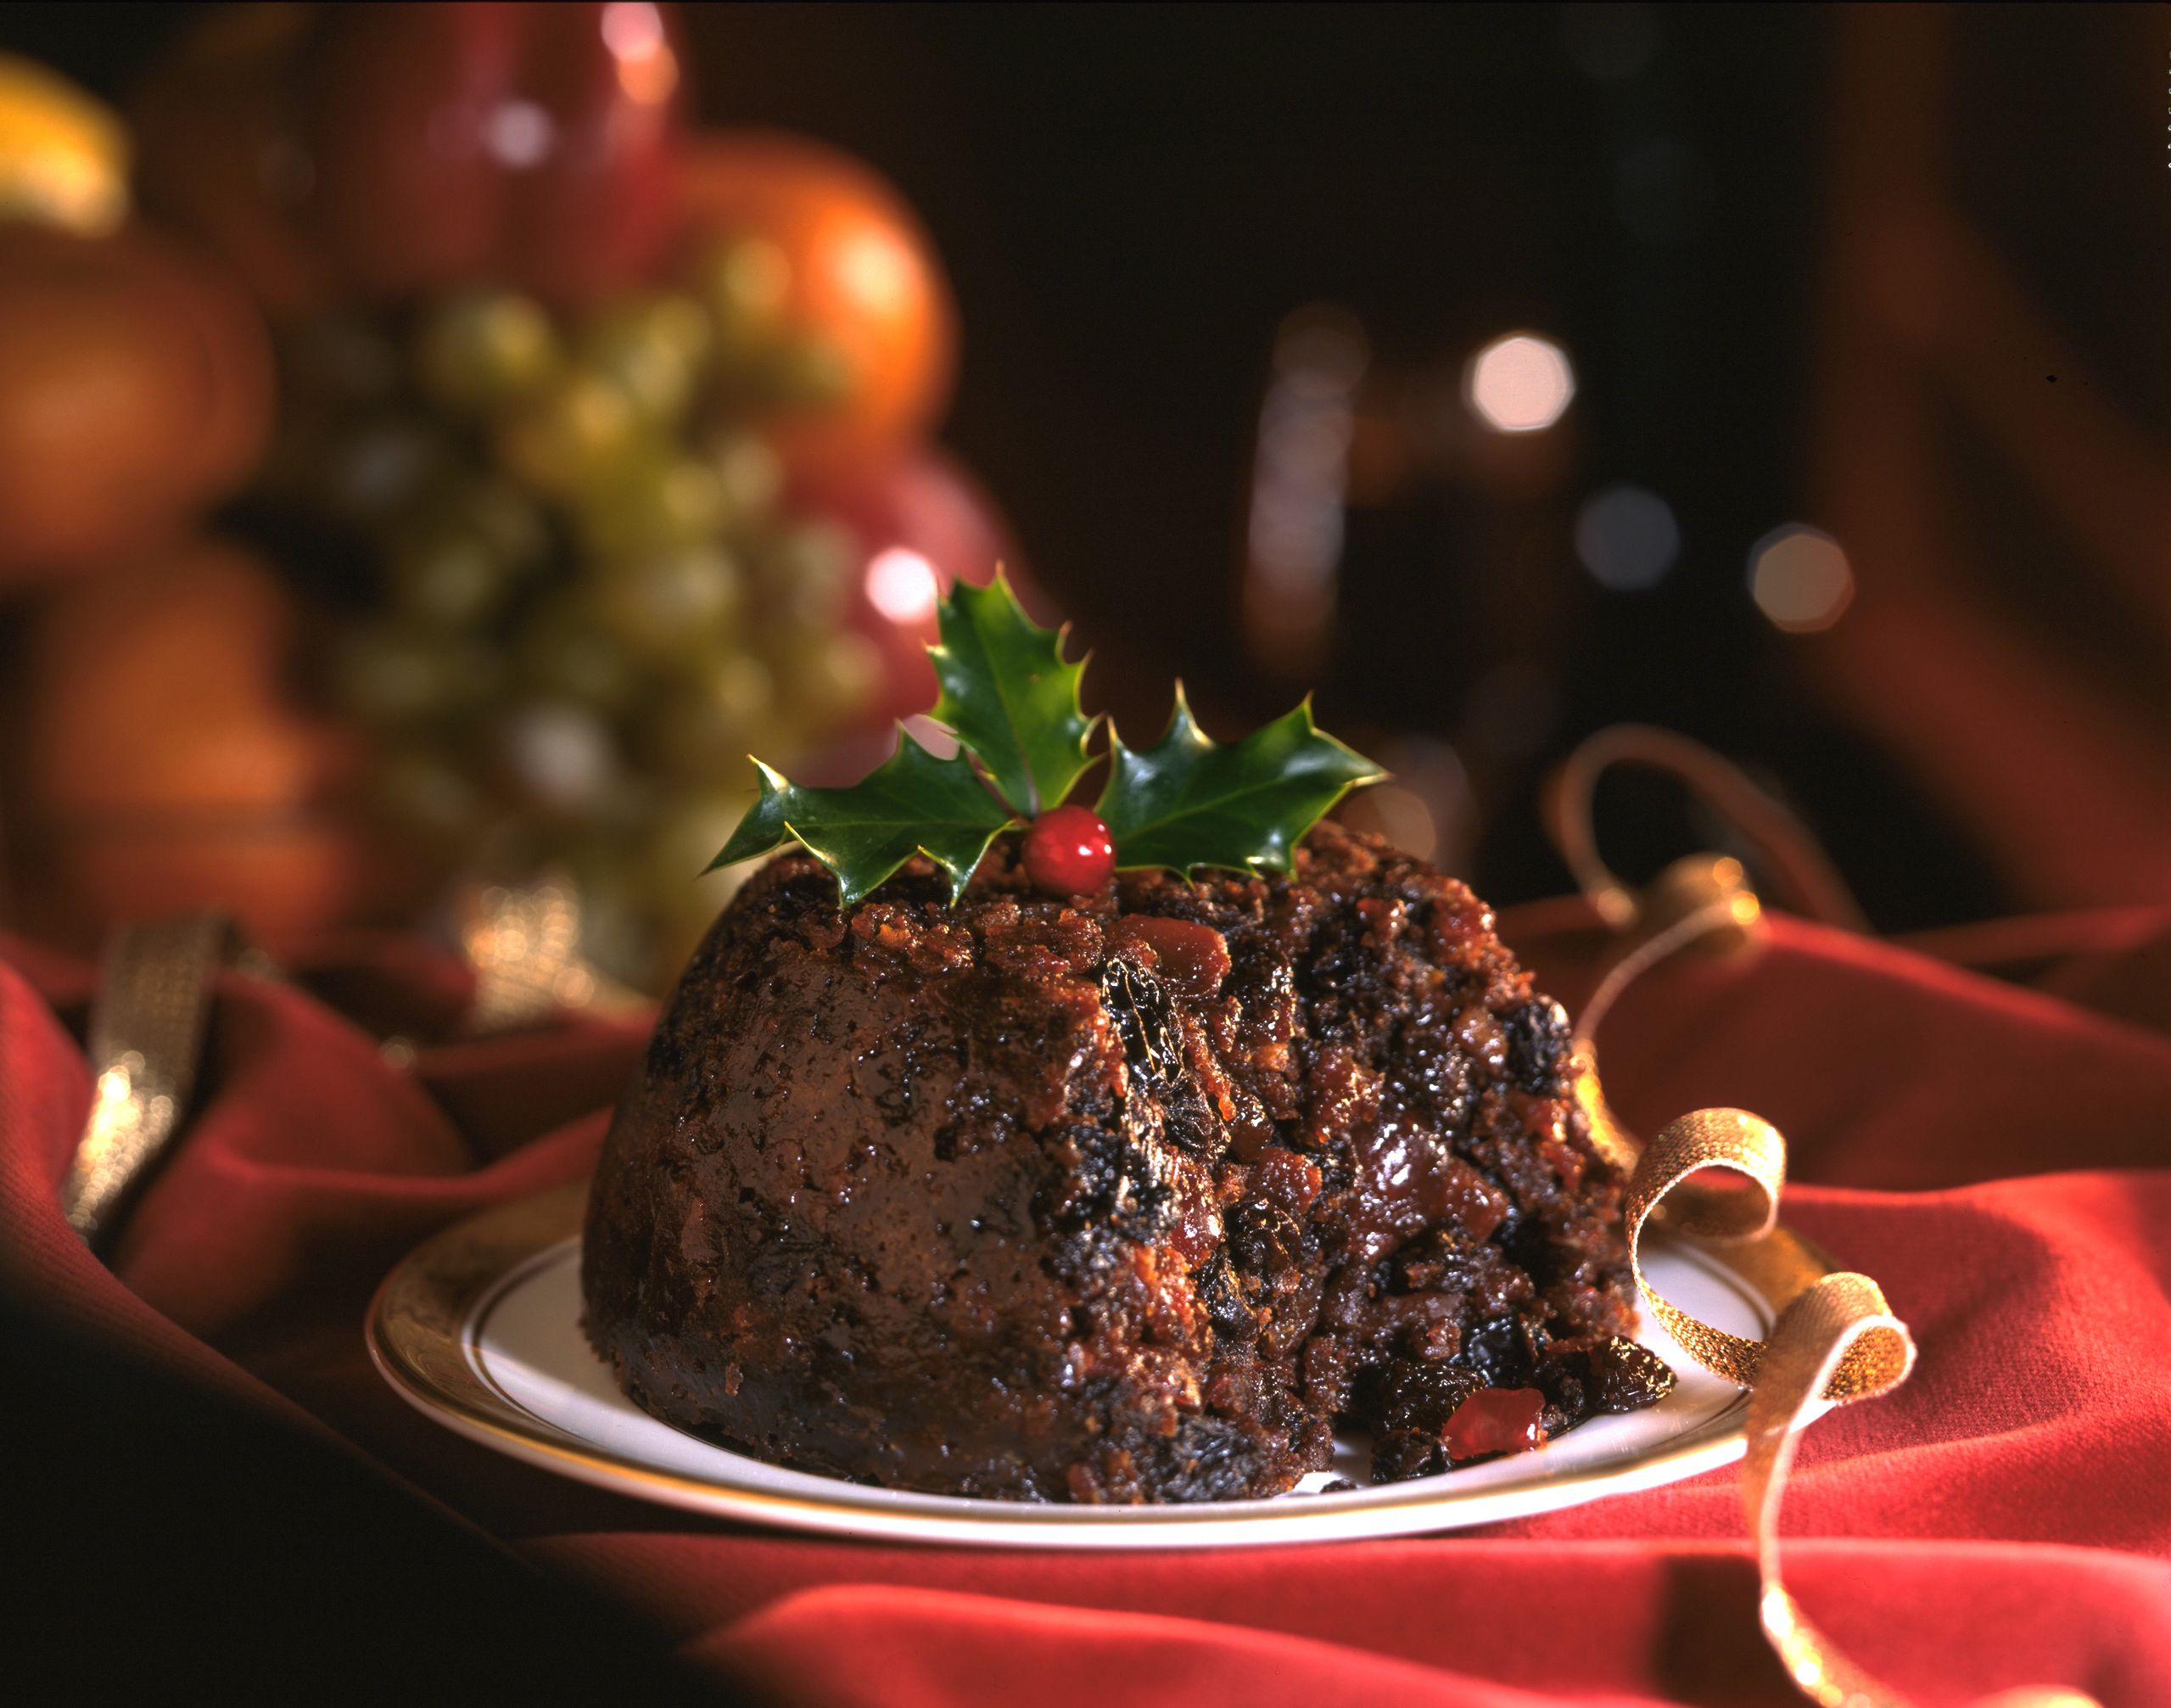 A Christmas Pudding Still A Tradition In England In 2020? Best Christmas pudding for 2019   the results are in!